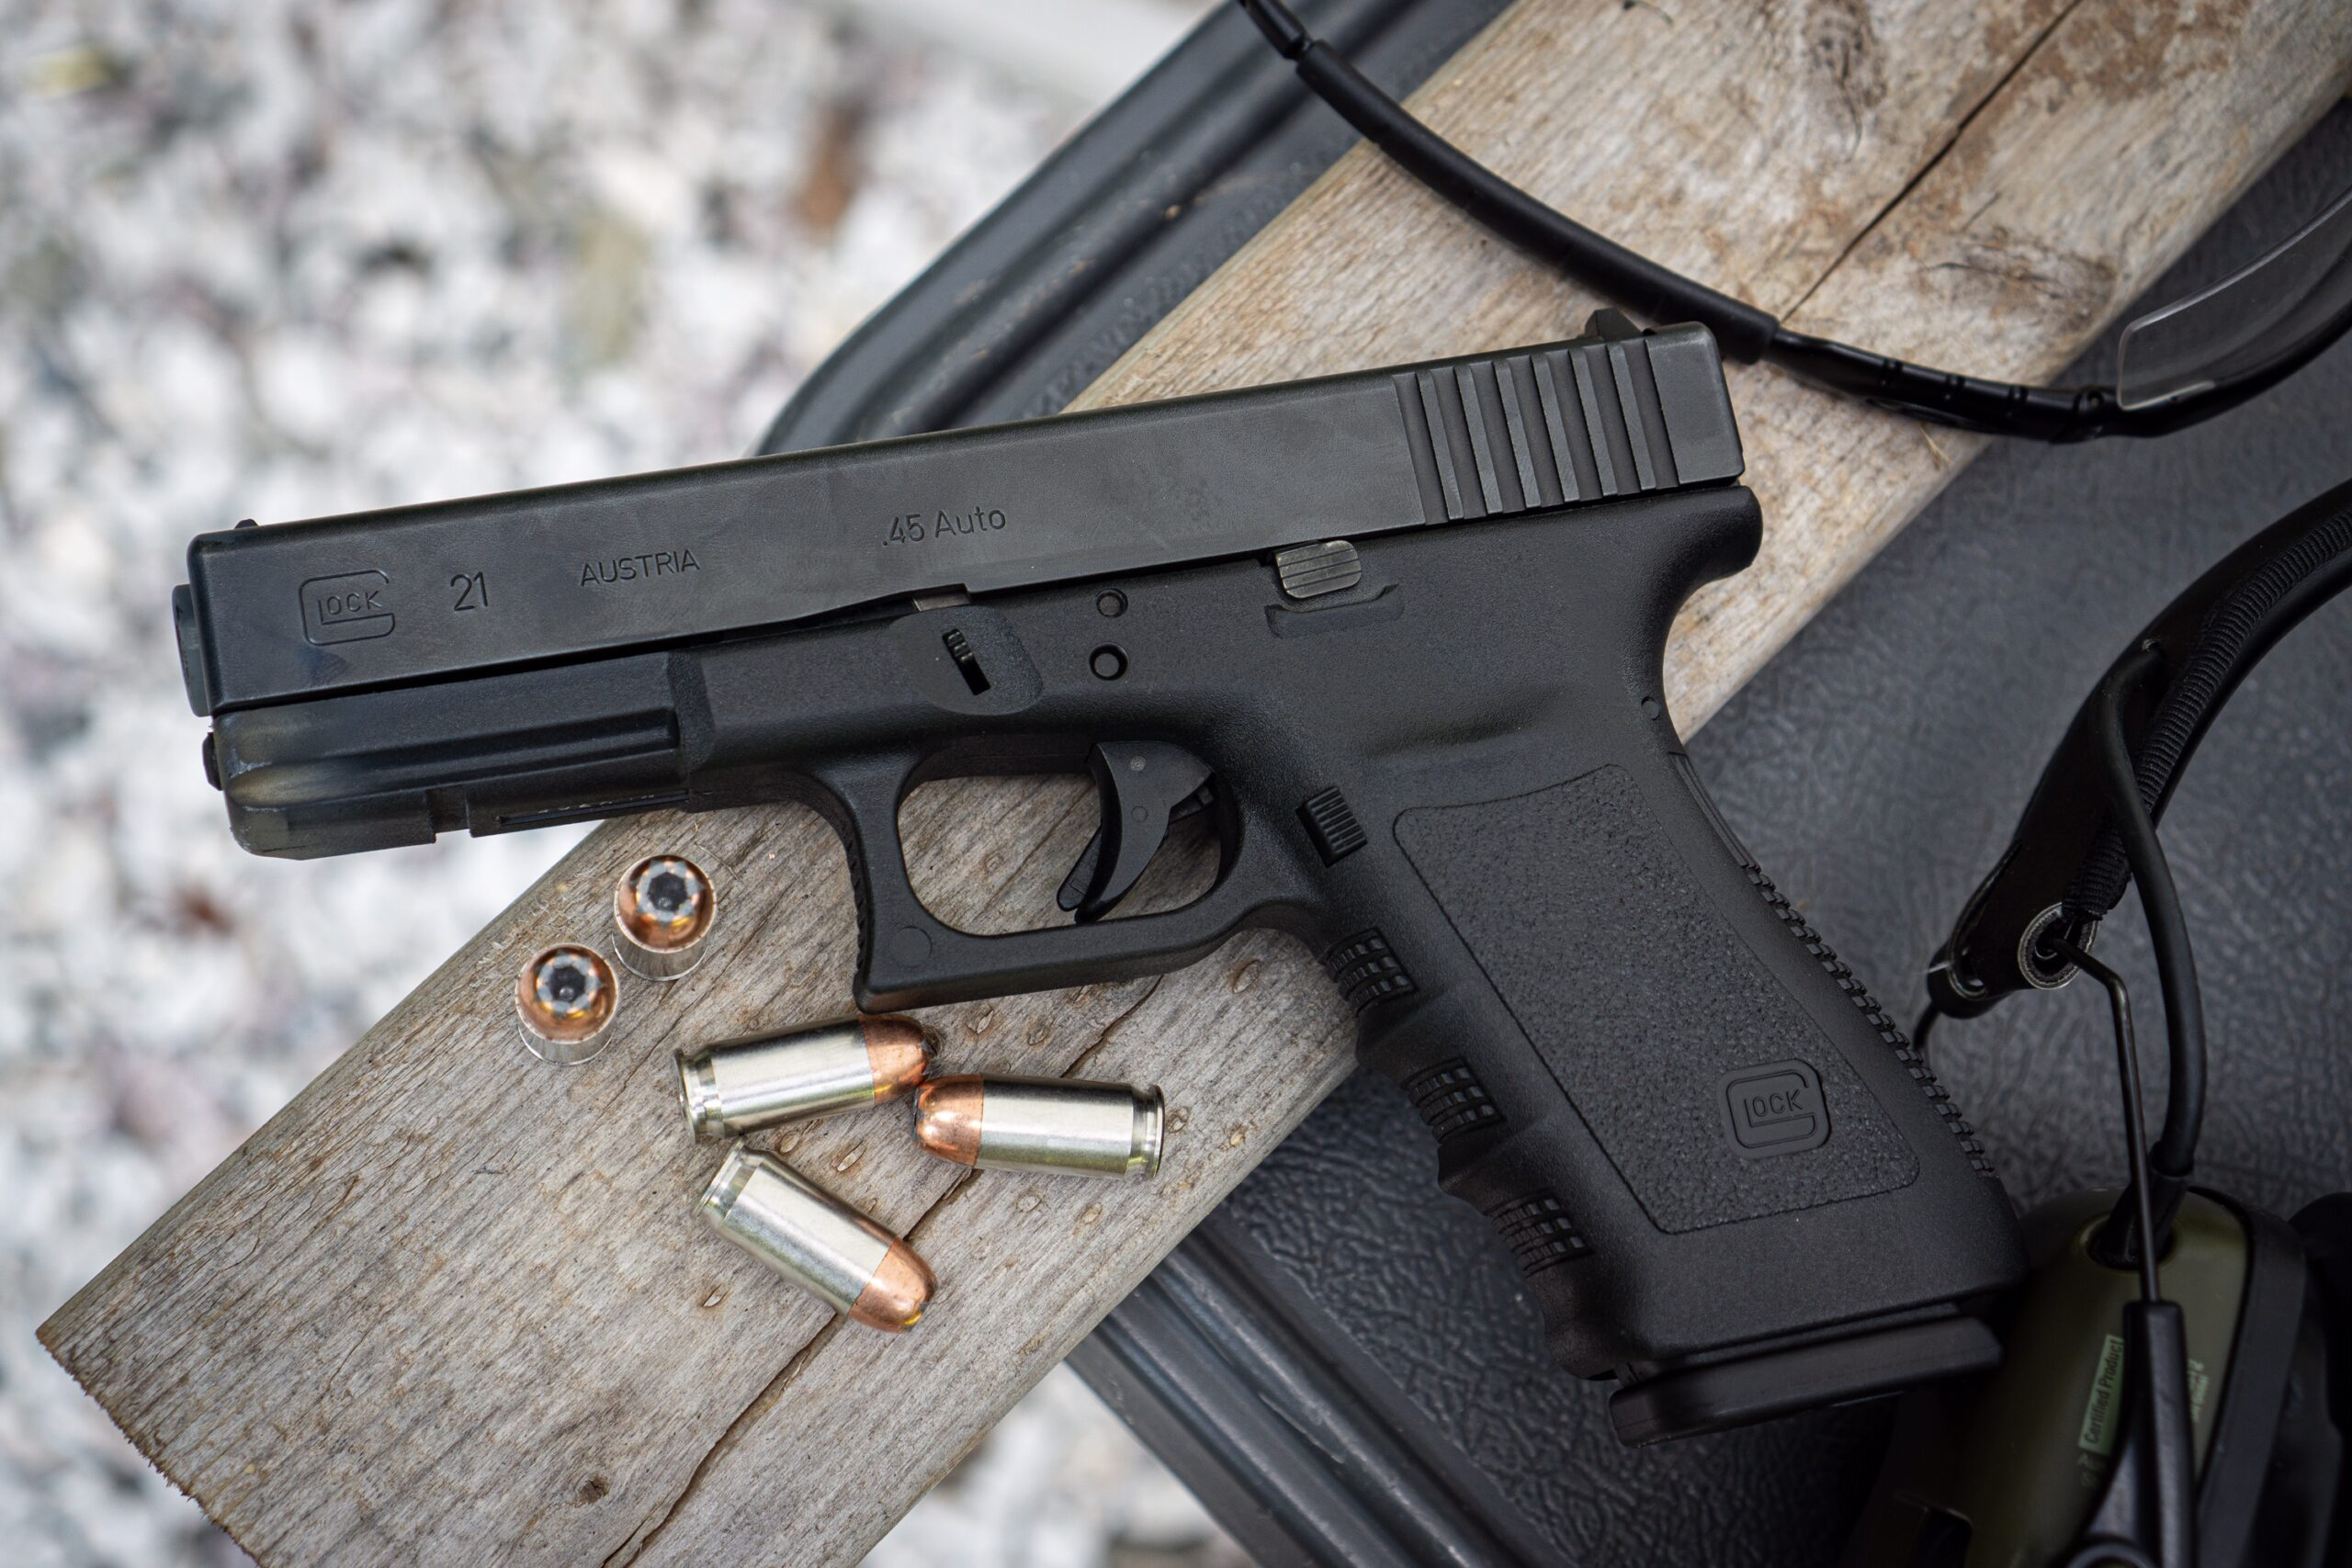 Glock 21 At The Shooting Range with ammunition